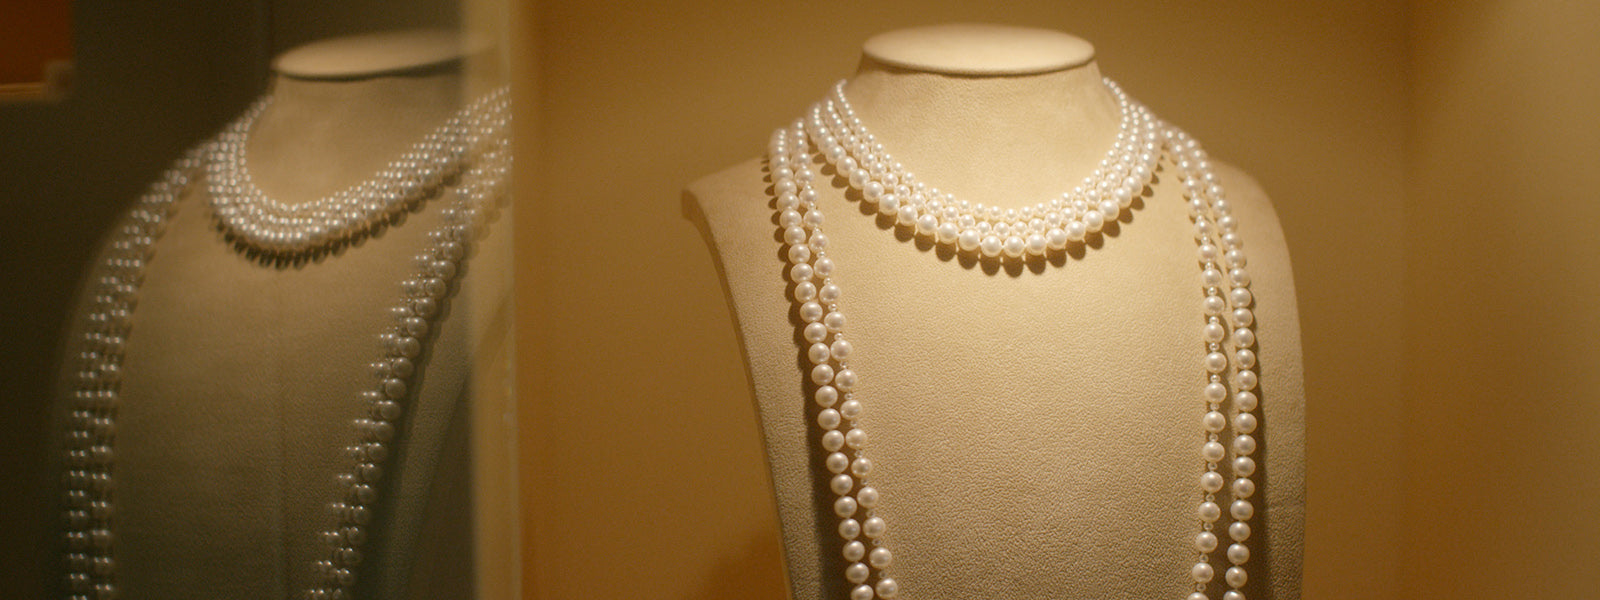 Taking Care of Pearls